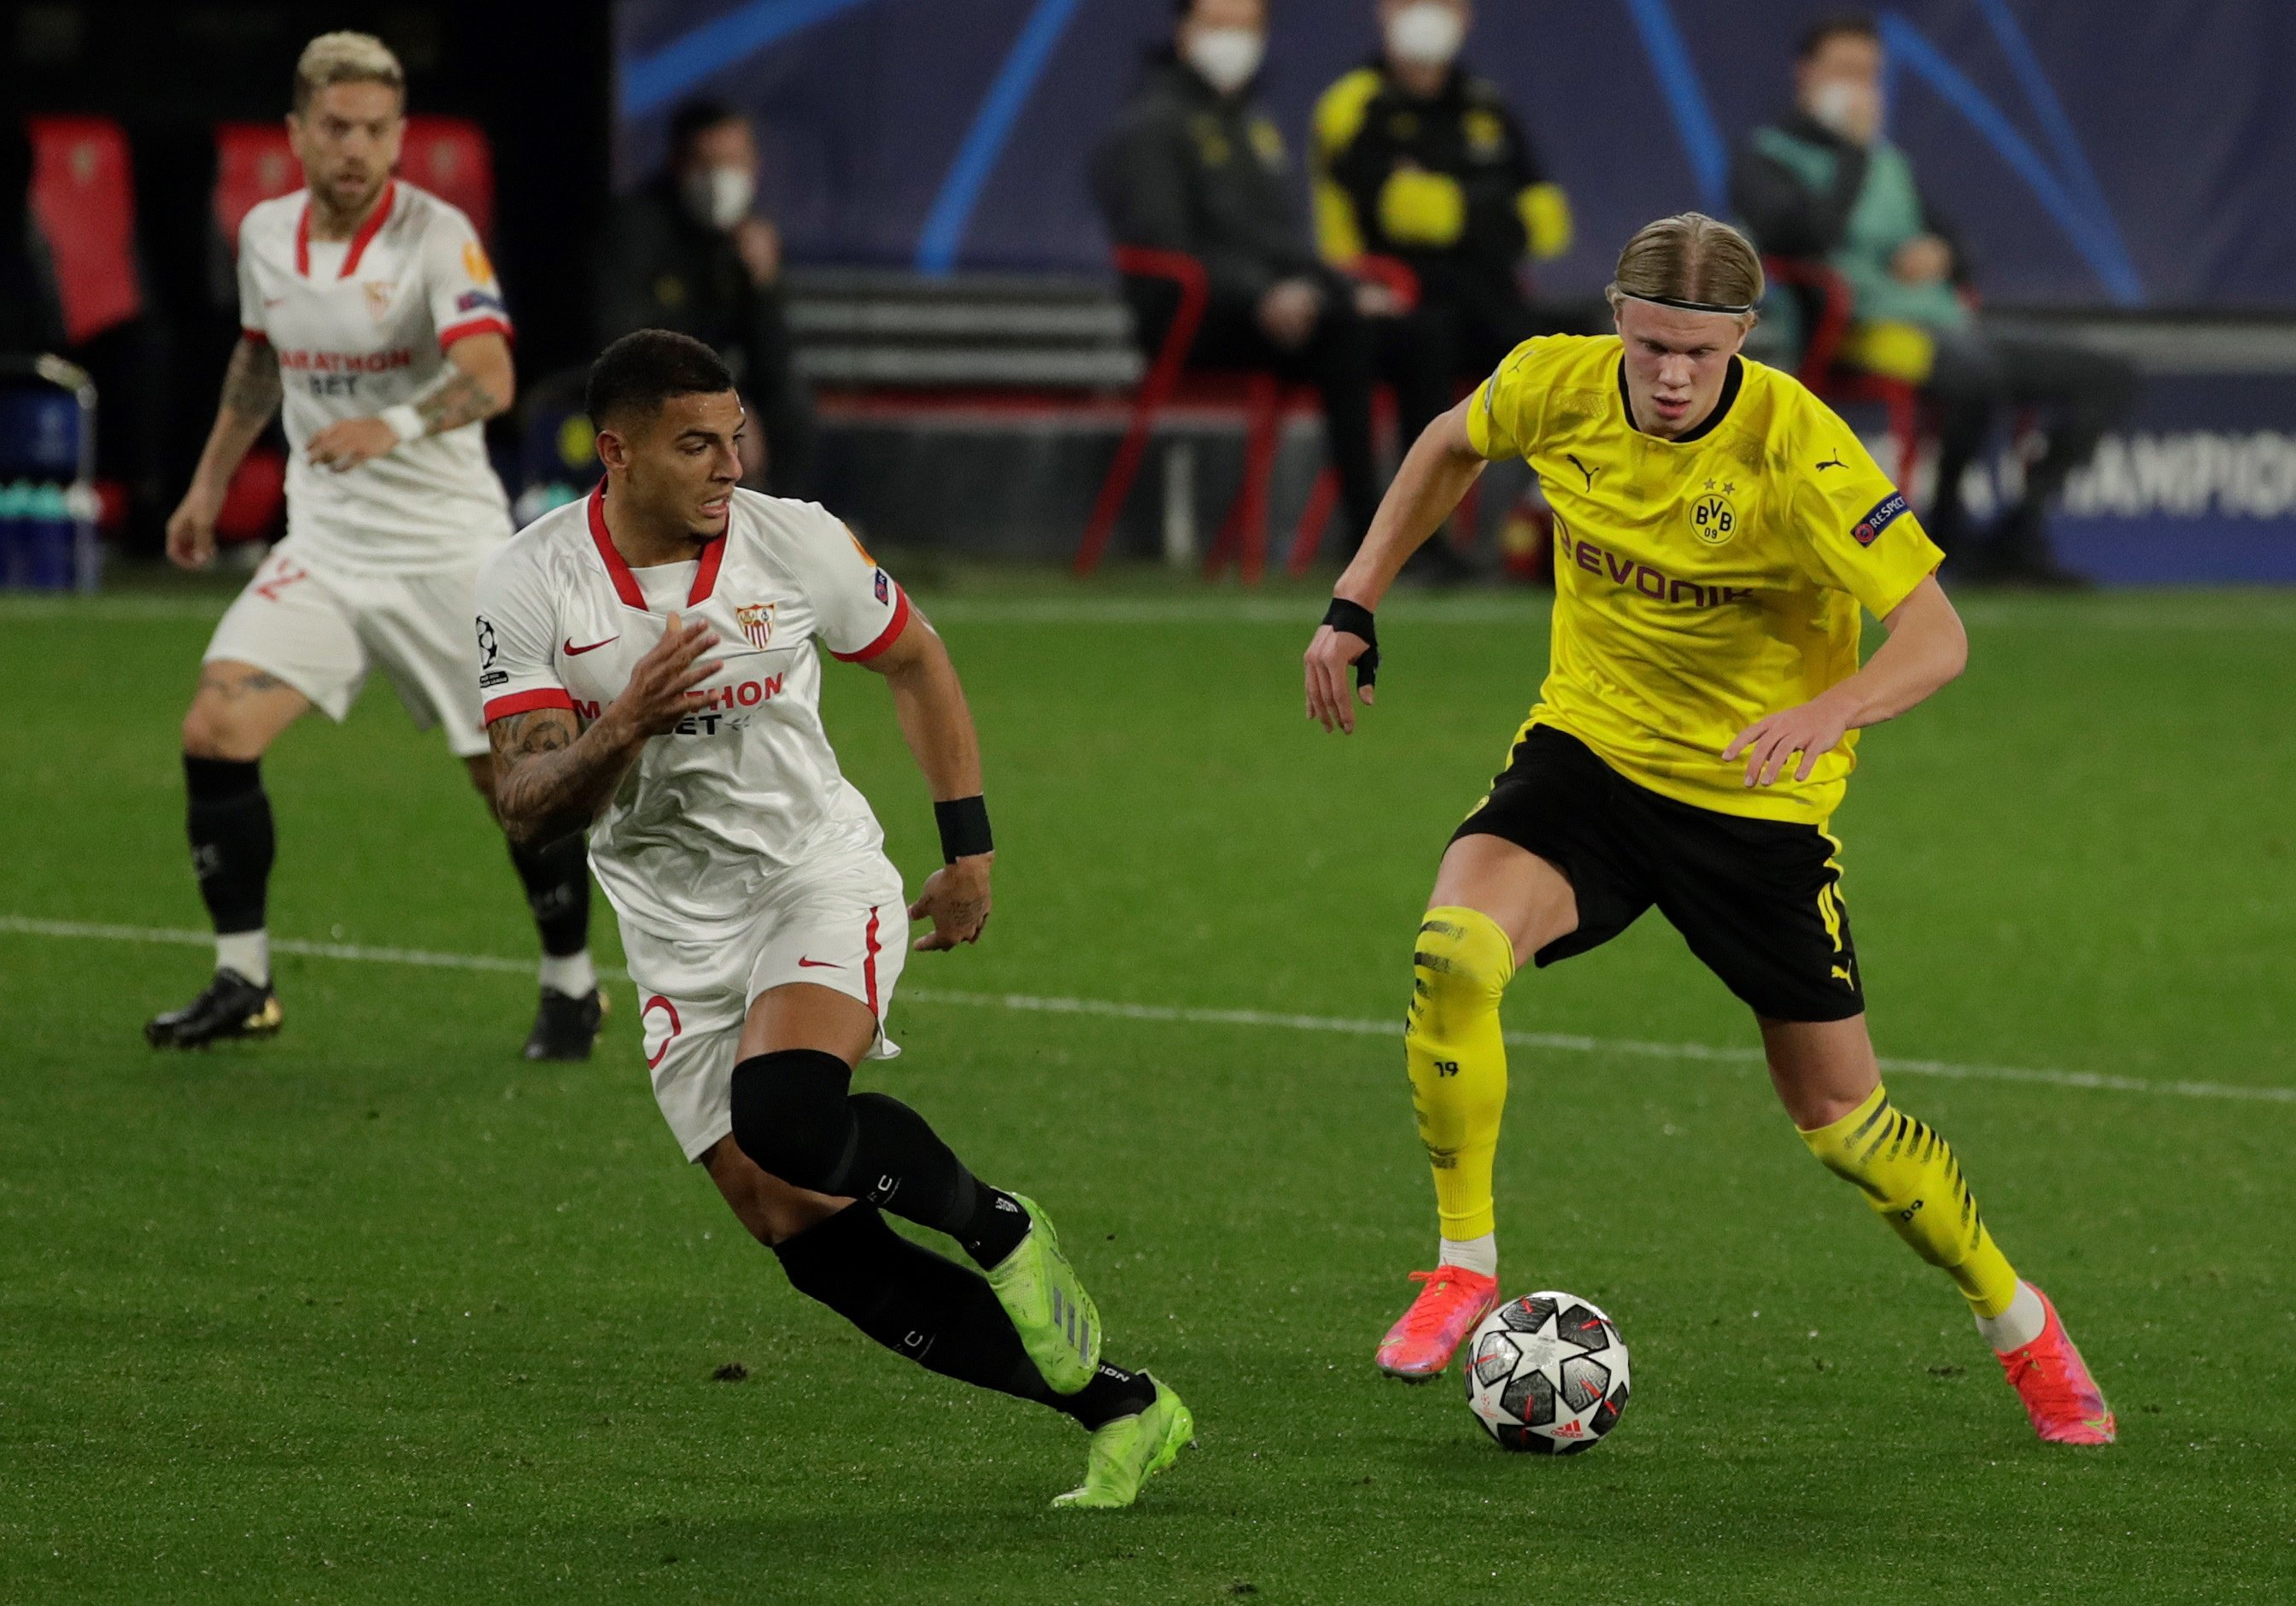 Sevilla defender Diego Carlos (L) vies for the ball with Borussia Dortmund striker Erling Haaland (R) during the first leg of the UEFA Champions League round of 16 match at Sanchez Pzijuan stadium in Seville, southern Spain, Feb. 17, 2021. (EPA Photo)